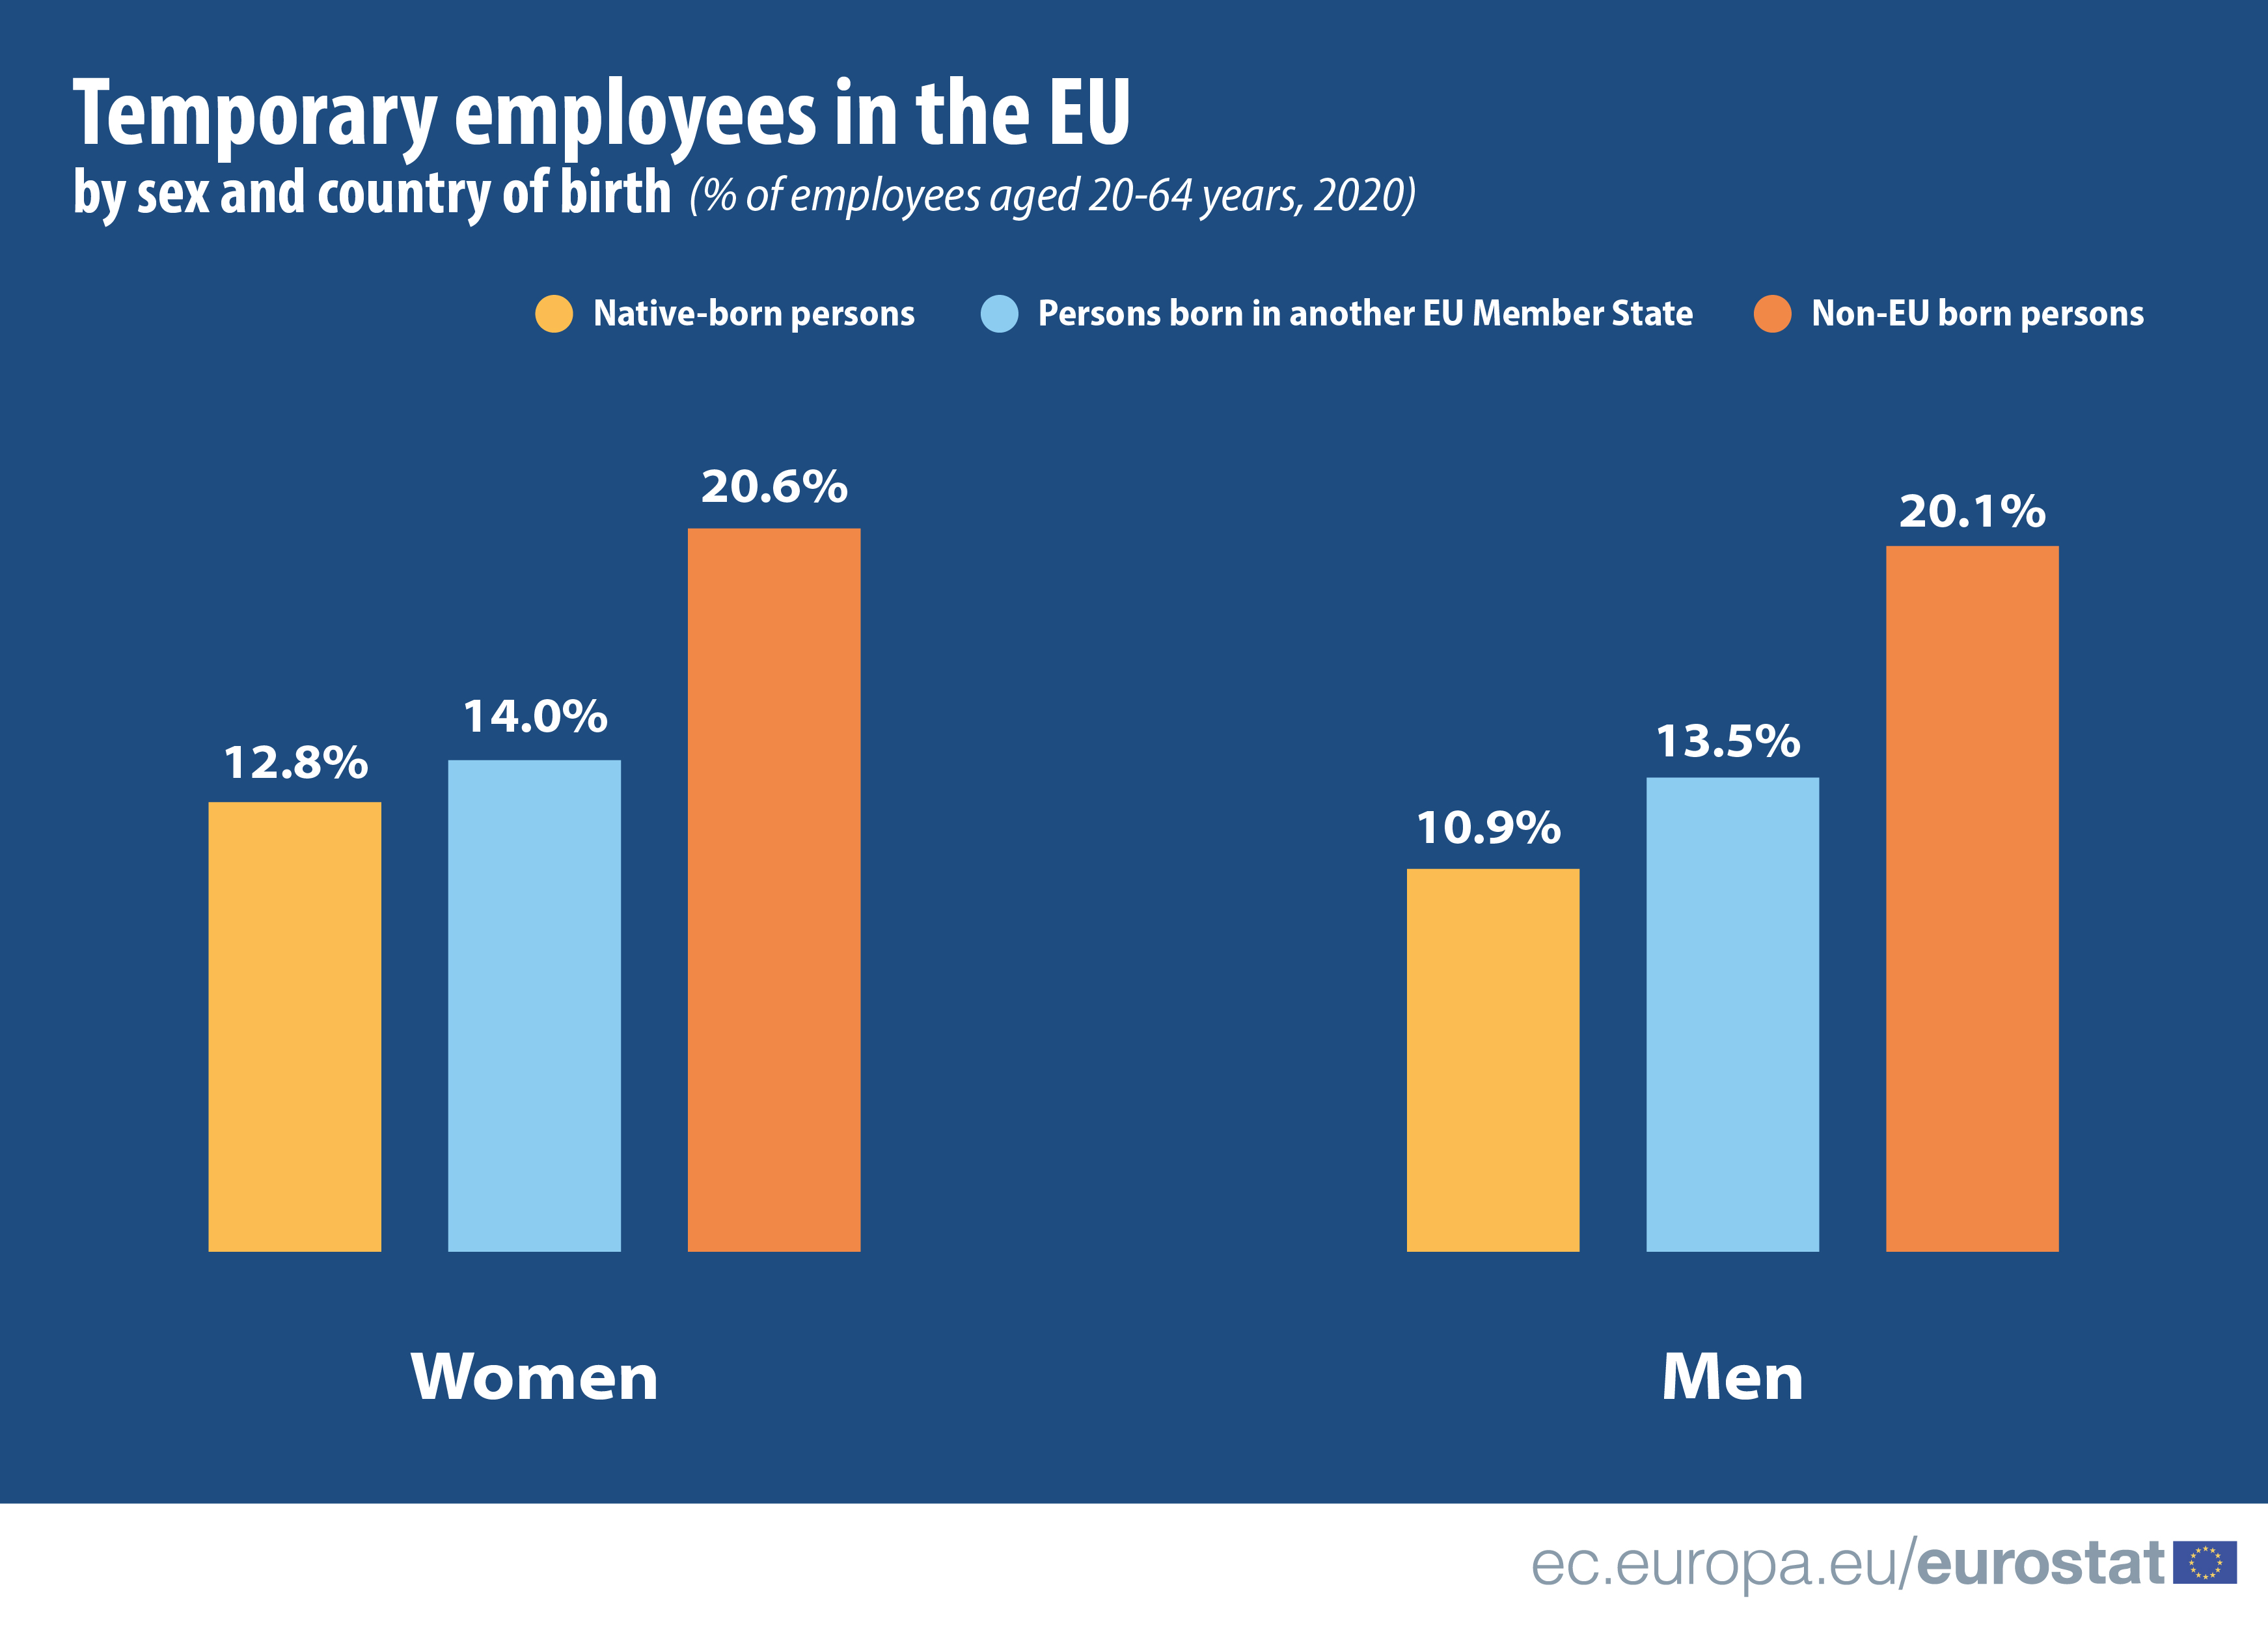 A bar chart showing the difference between men and women in the number of temporary contracts, by nationality (EU-born, intra-EU born, non-EU born), as percentage of employees, for EU as a whole, 2020 data